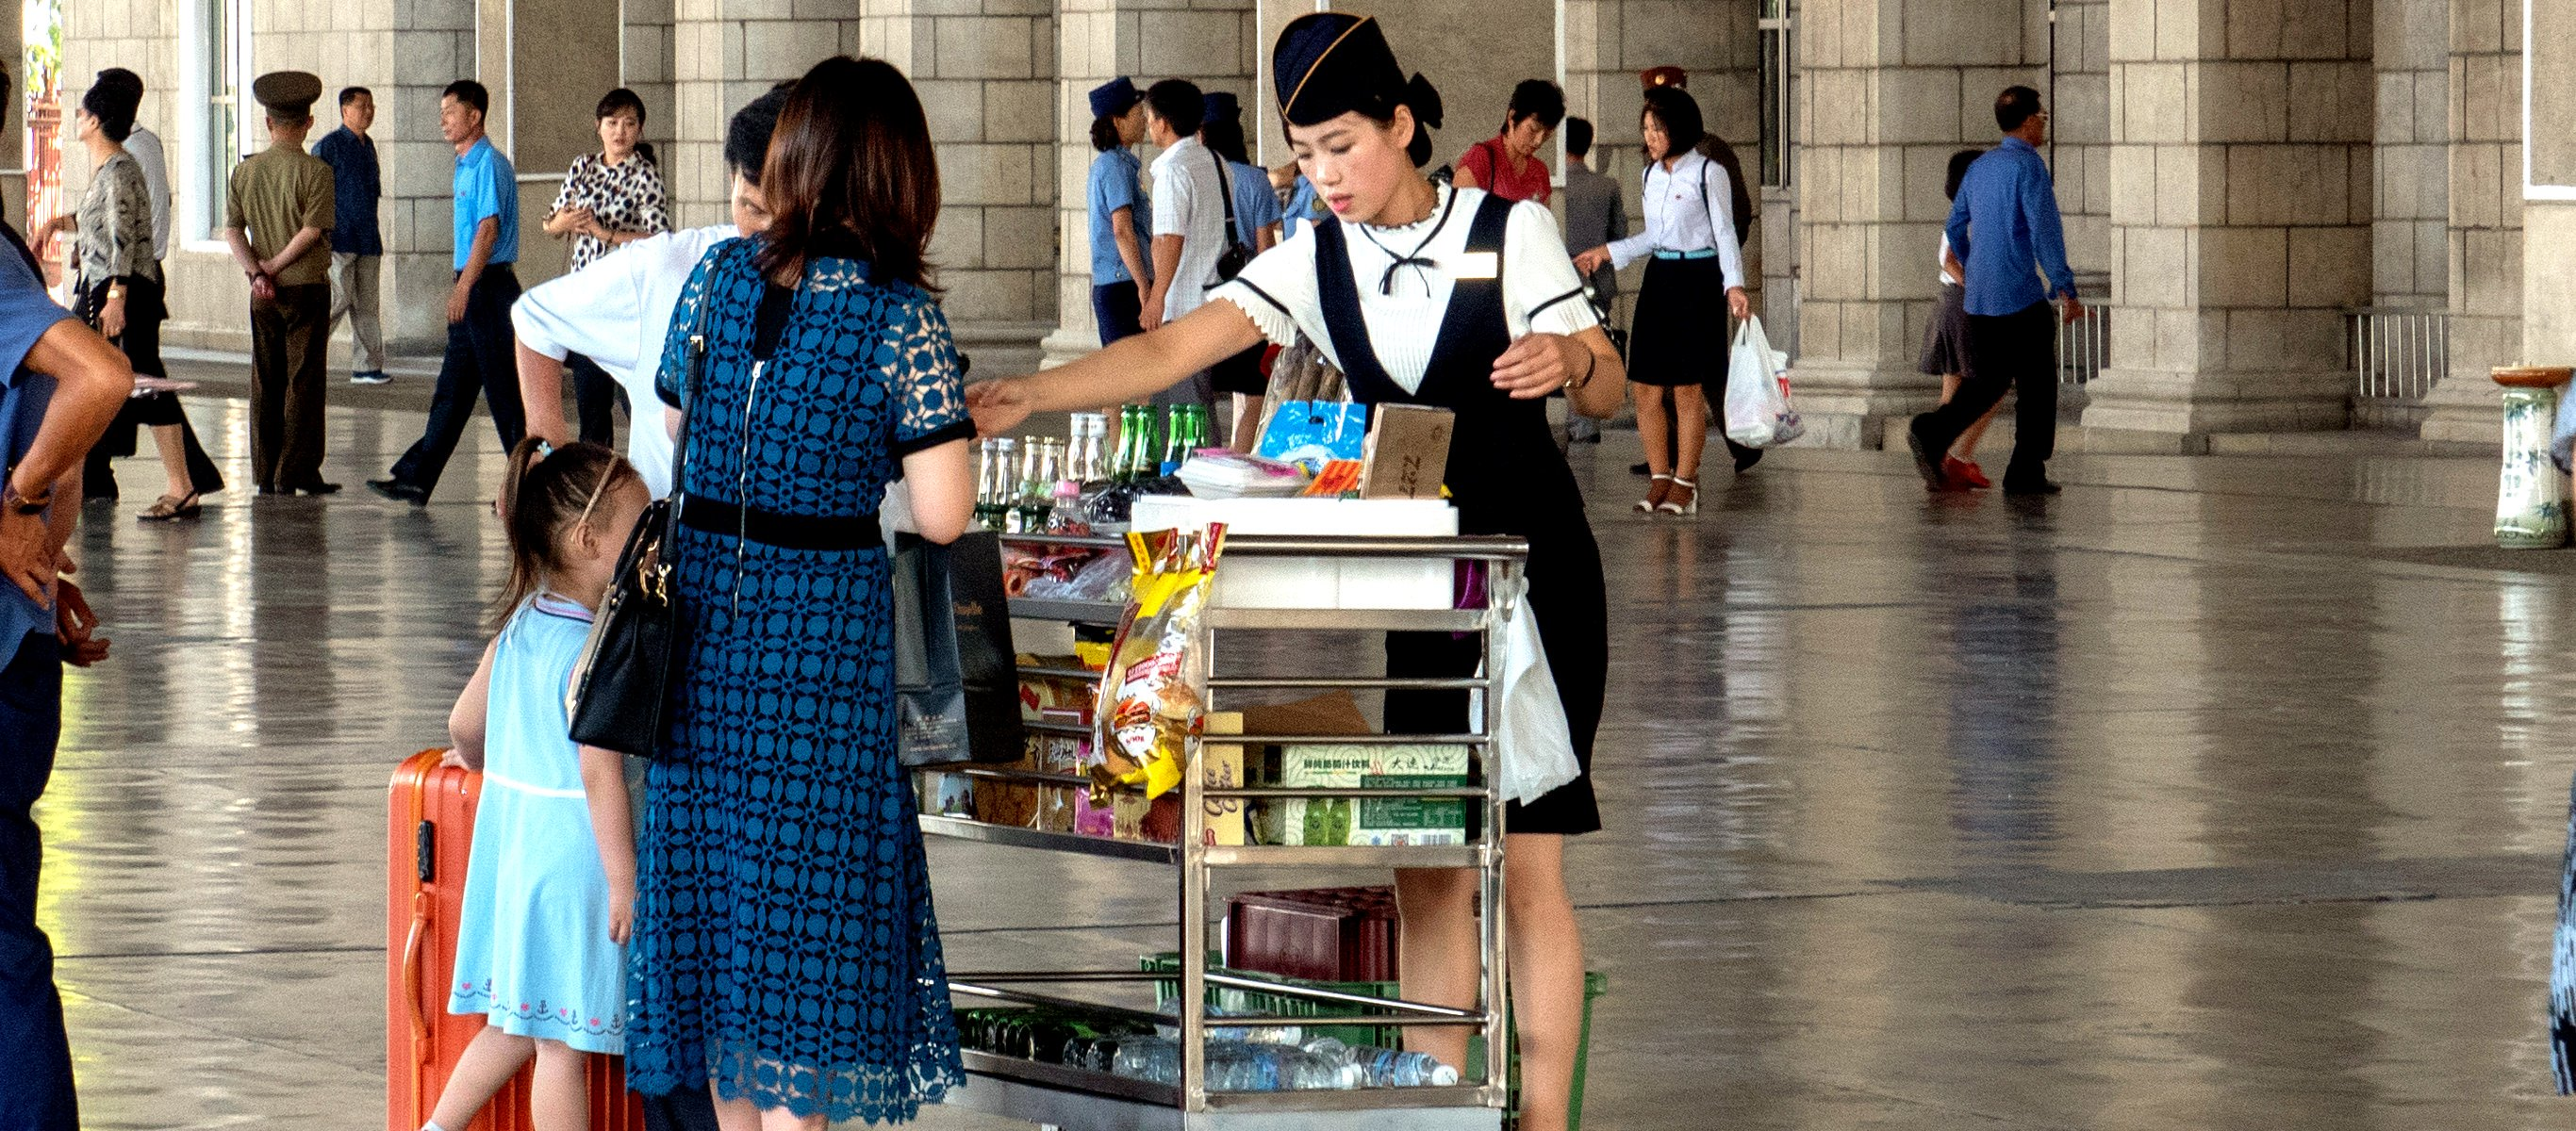 Pyongyang Train Station, North Korea (DPRK) with KTG Tours